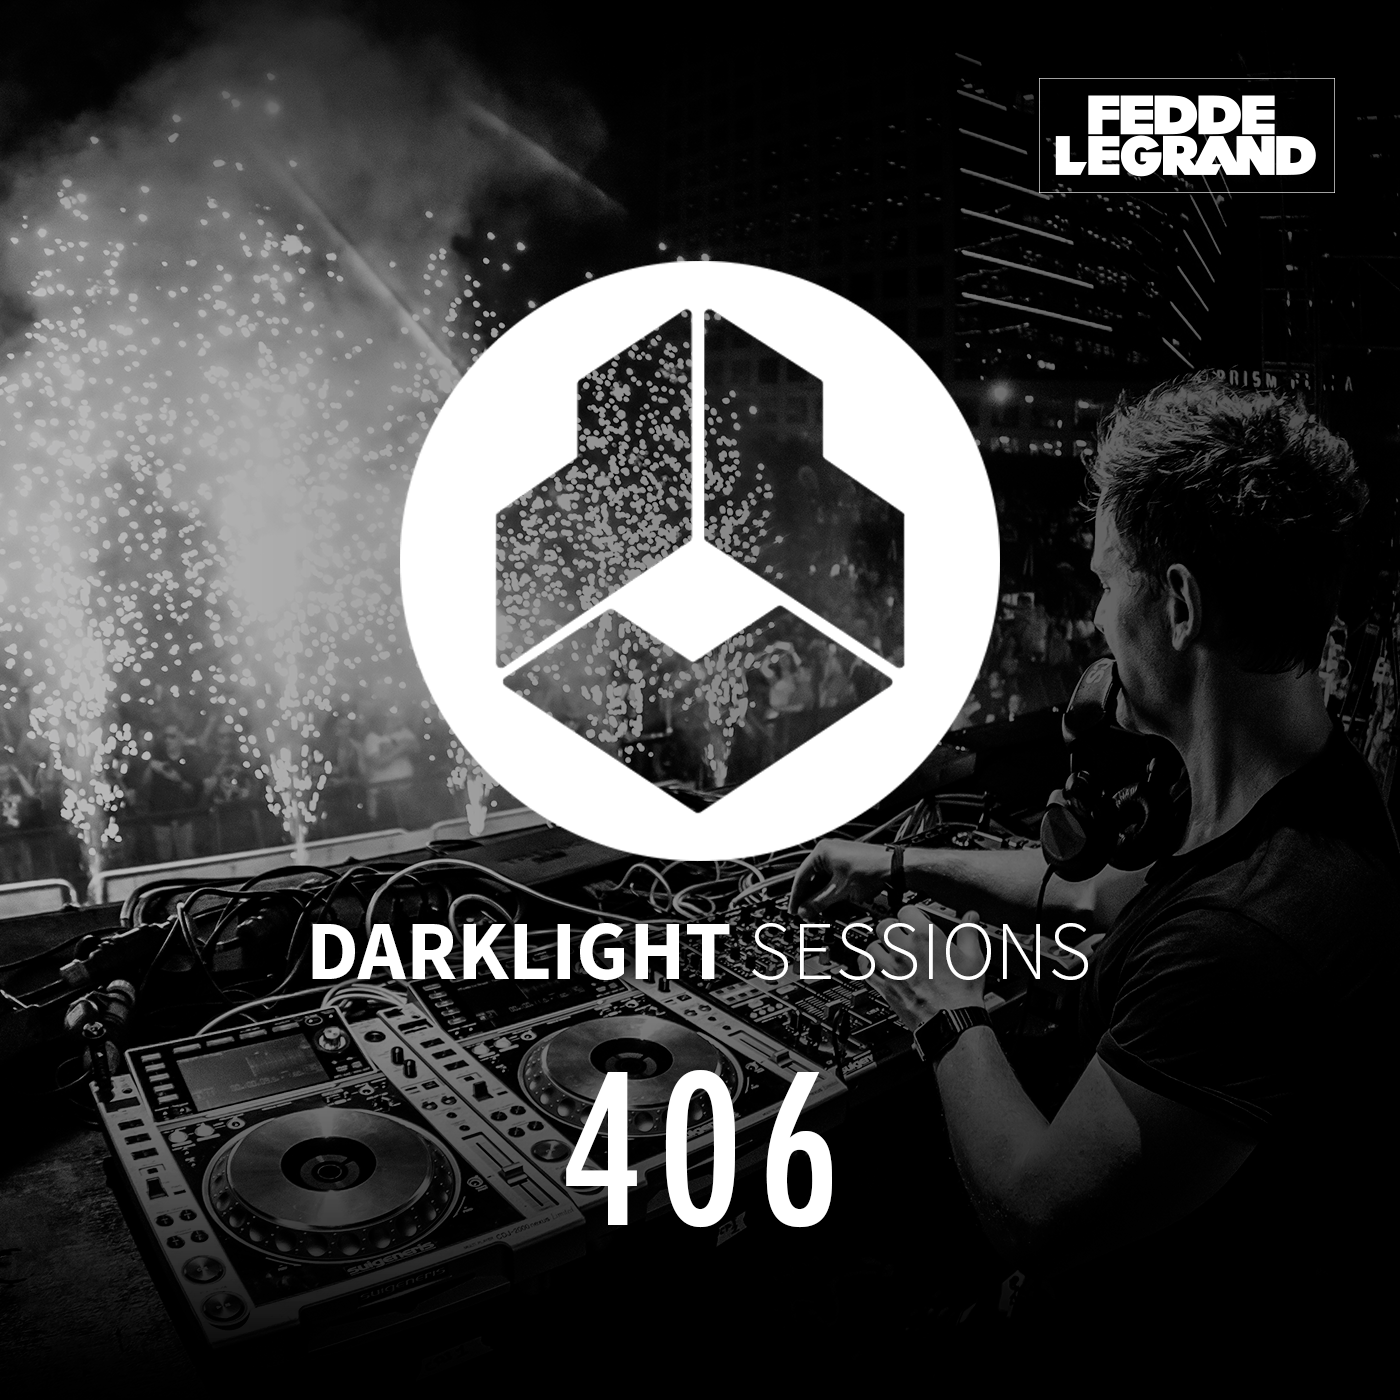 Darklight Sessions 406